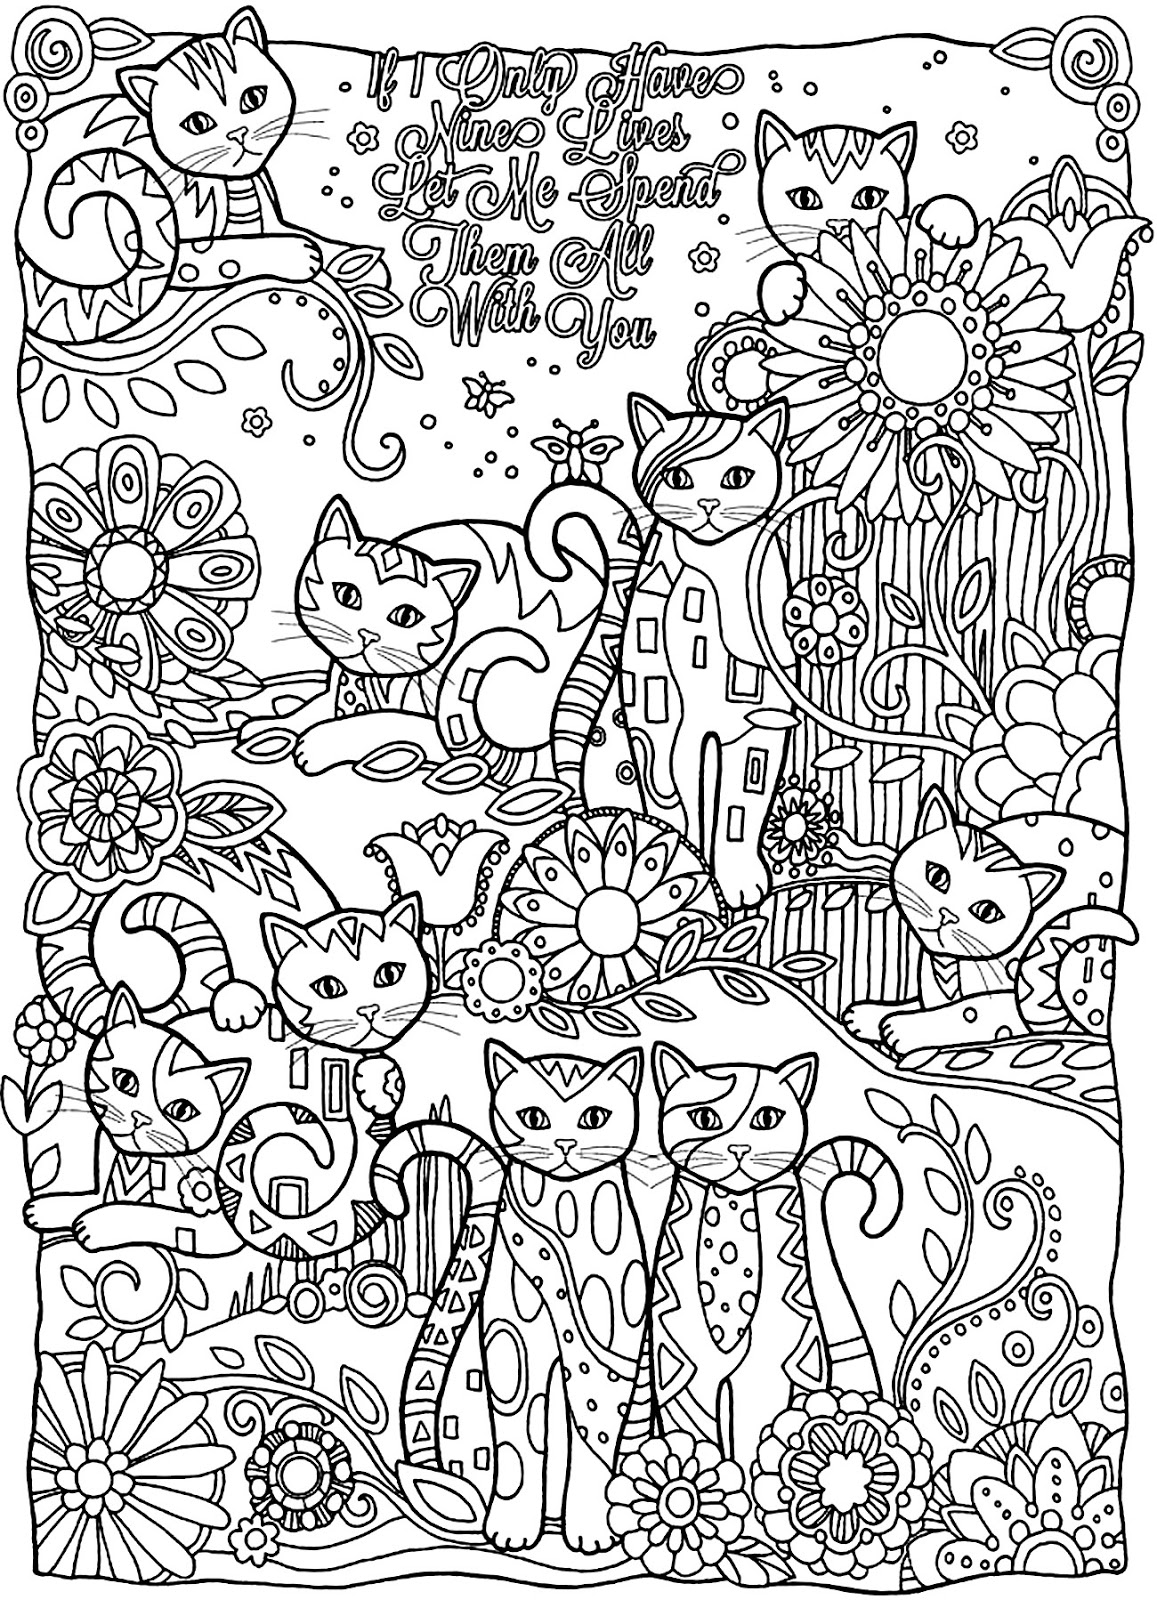 coloring adult pages - photo#41